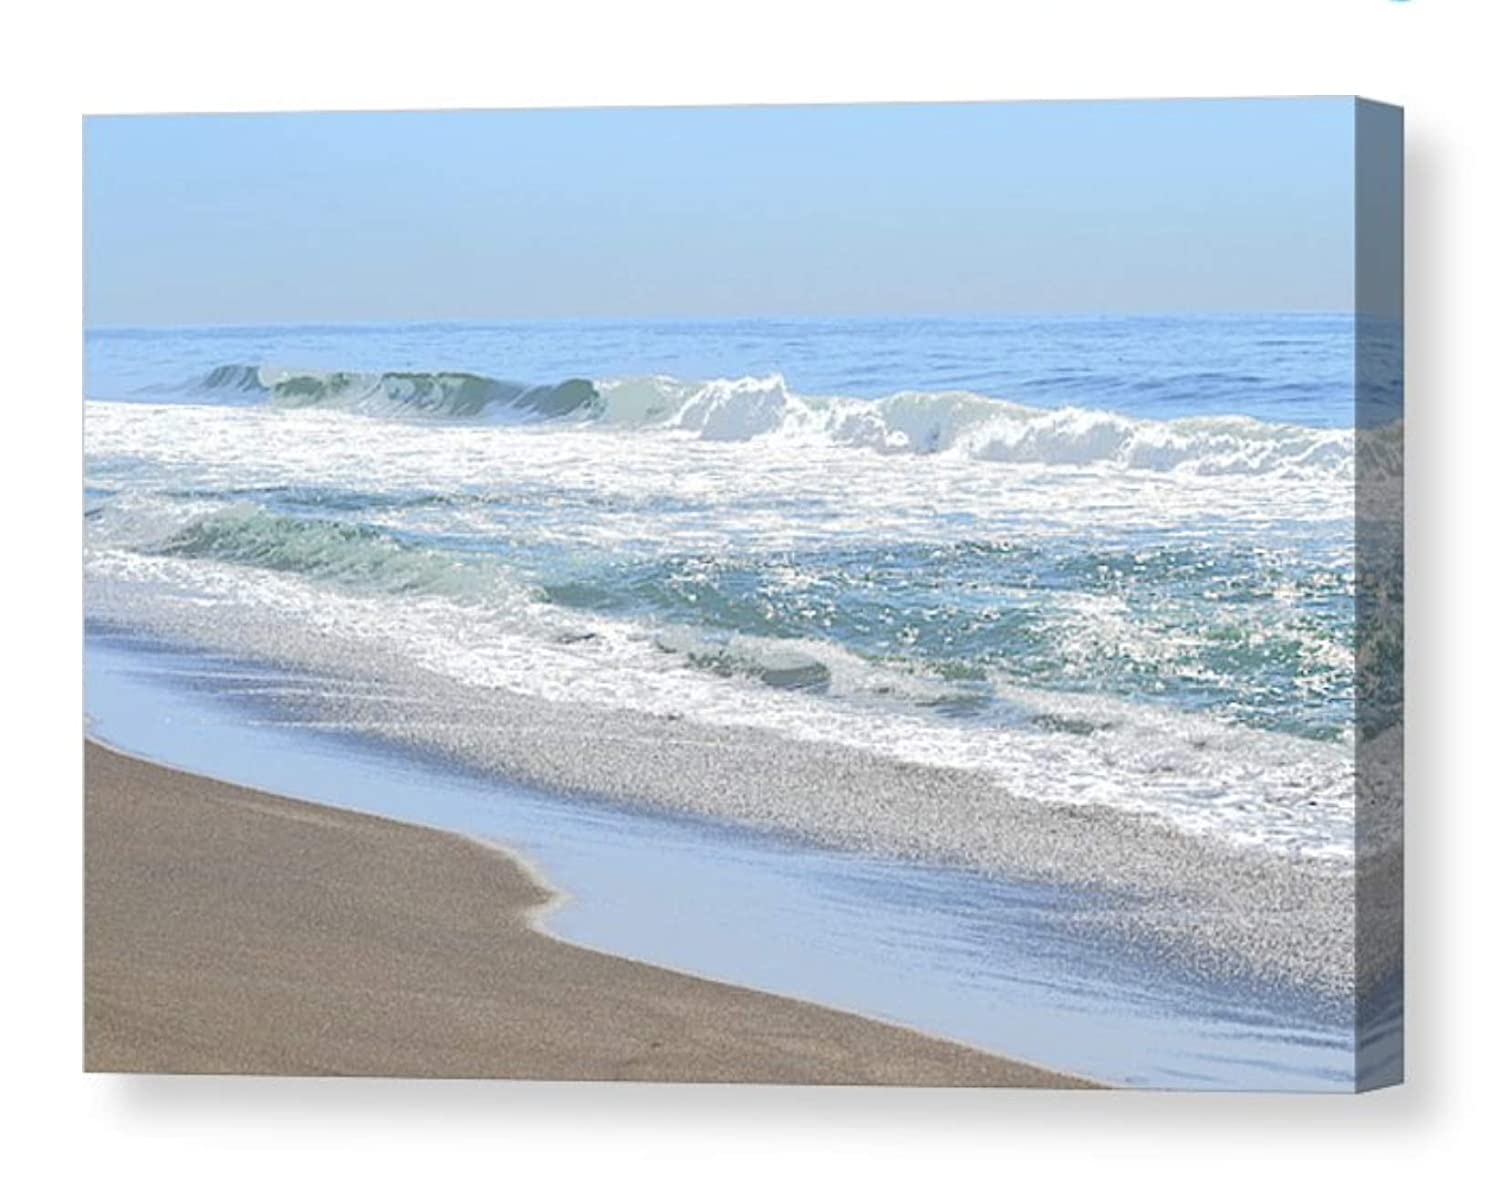 8x12 FT Beach Vinyl Photography Background Backdrops,Coastal Home Design with Ocean Sea Waves Sand Image Art Print Background for Selfie Birthday Party Pictures Photo Booth Shoot